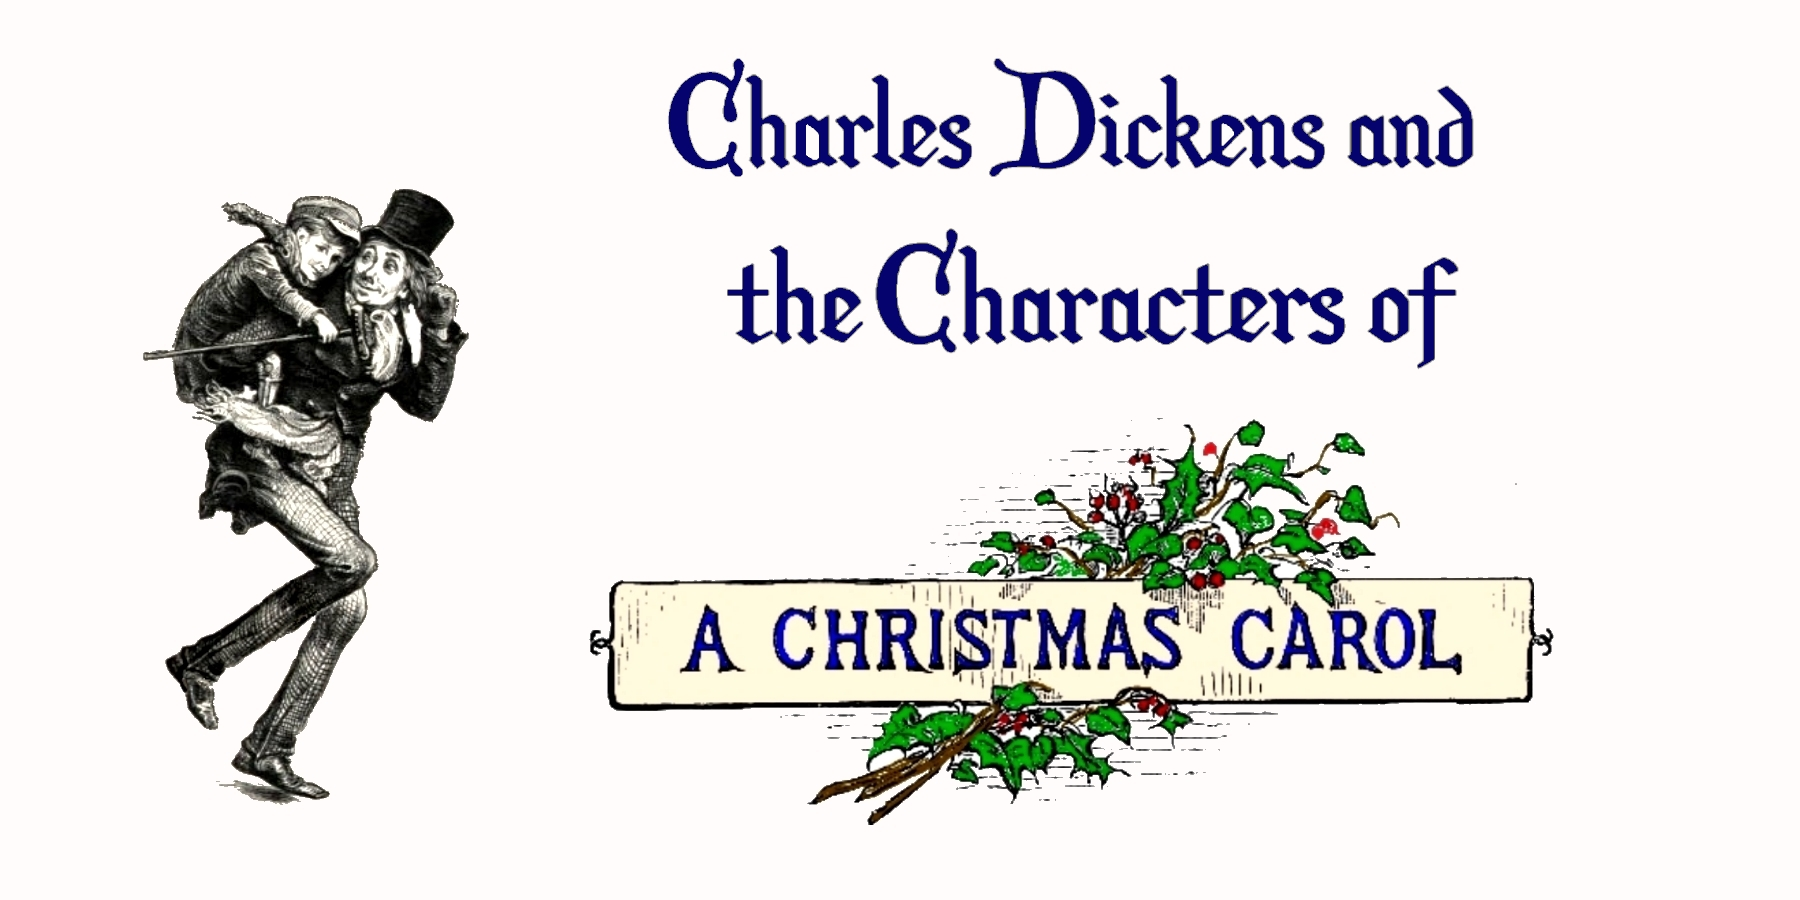 charles dickens a christmas carol A christmas carol by charles dickens is a victorian morality tale of an old and bitter miser, ebenezer scrooge, who undergoes a profound experience of redemption over the course of one evening contents.